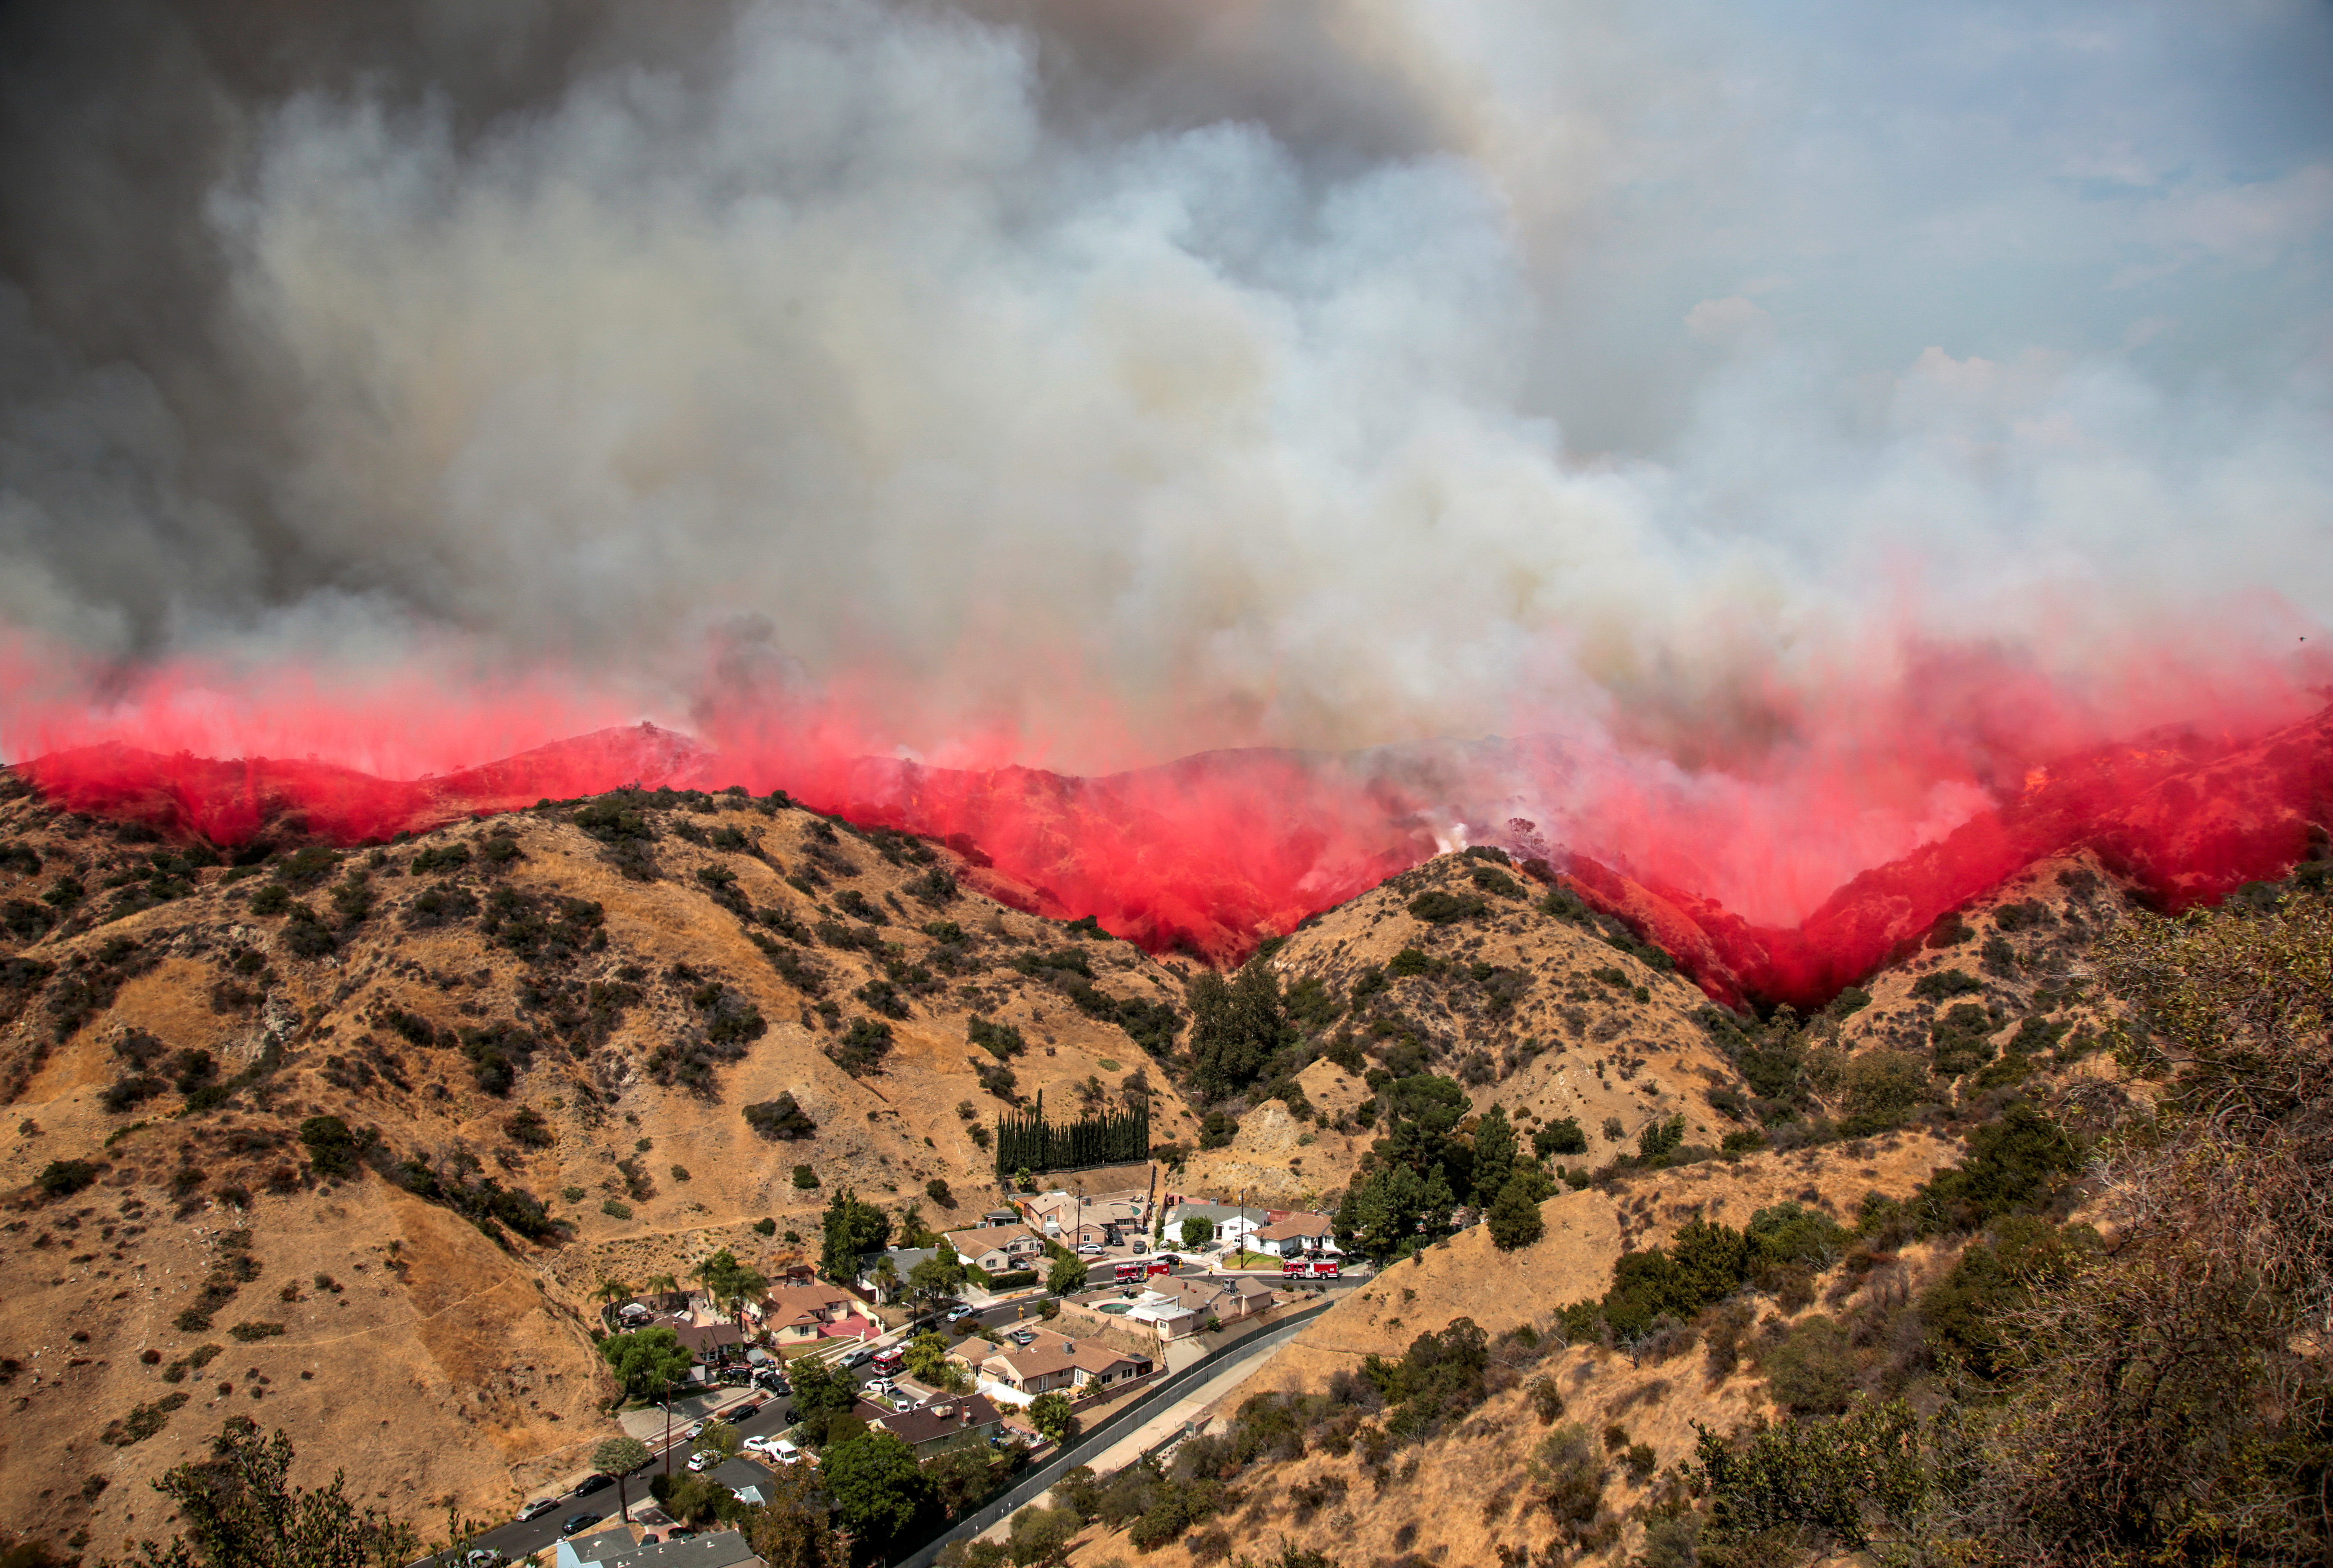 The La Tuna Canyon fire over Burbank. (REUTERS/ Kyle Grillot)